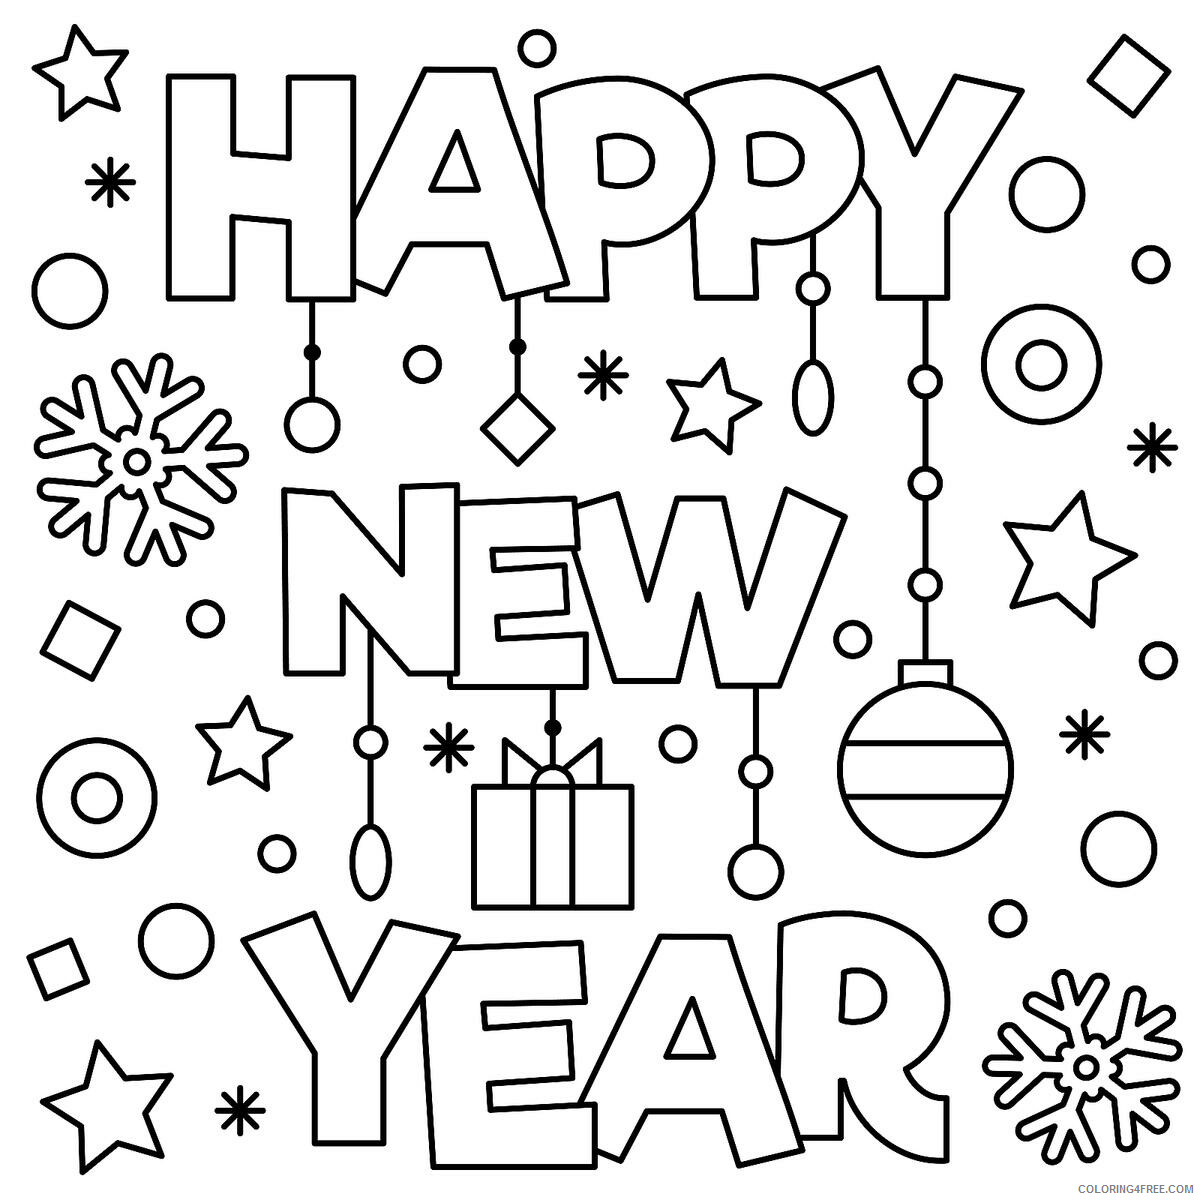 Happy New Year Coloring Pages Holiday Happy New Year Printable 2021 0741 Coloring4free Coloring4free Com